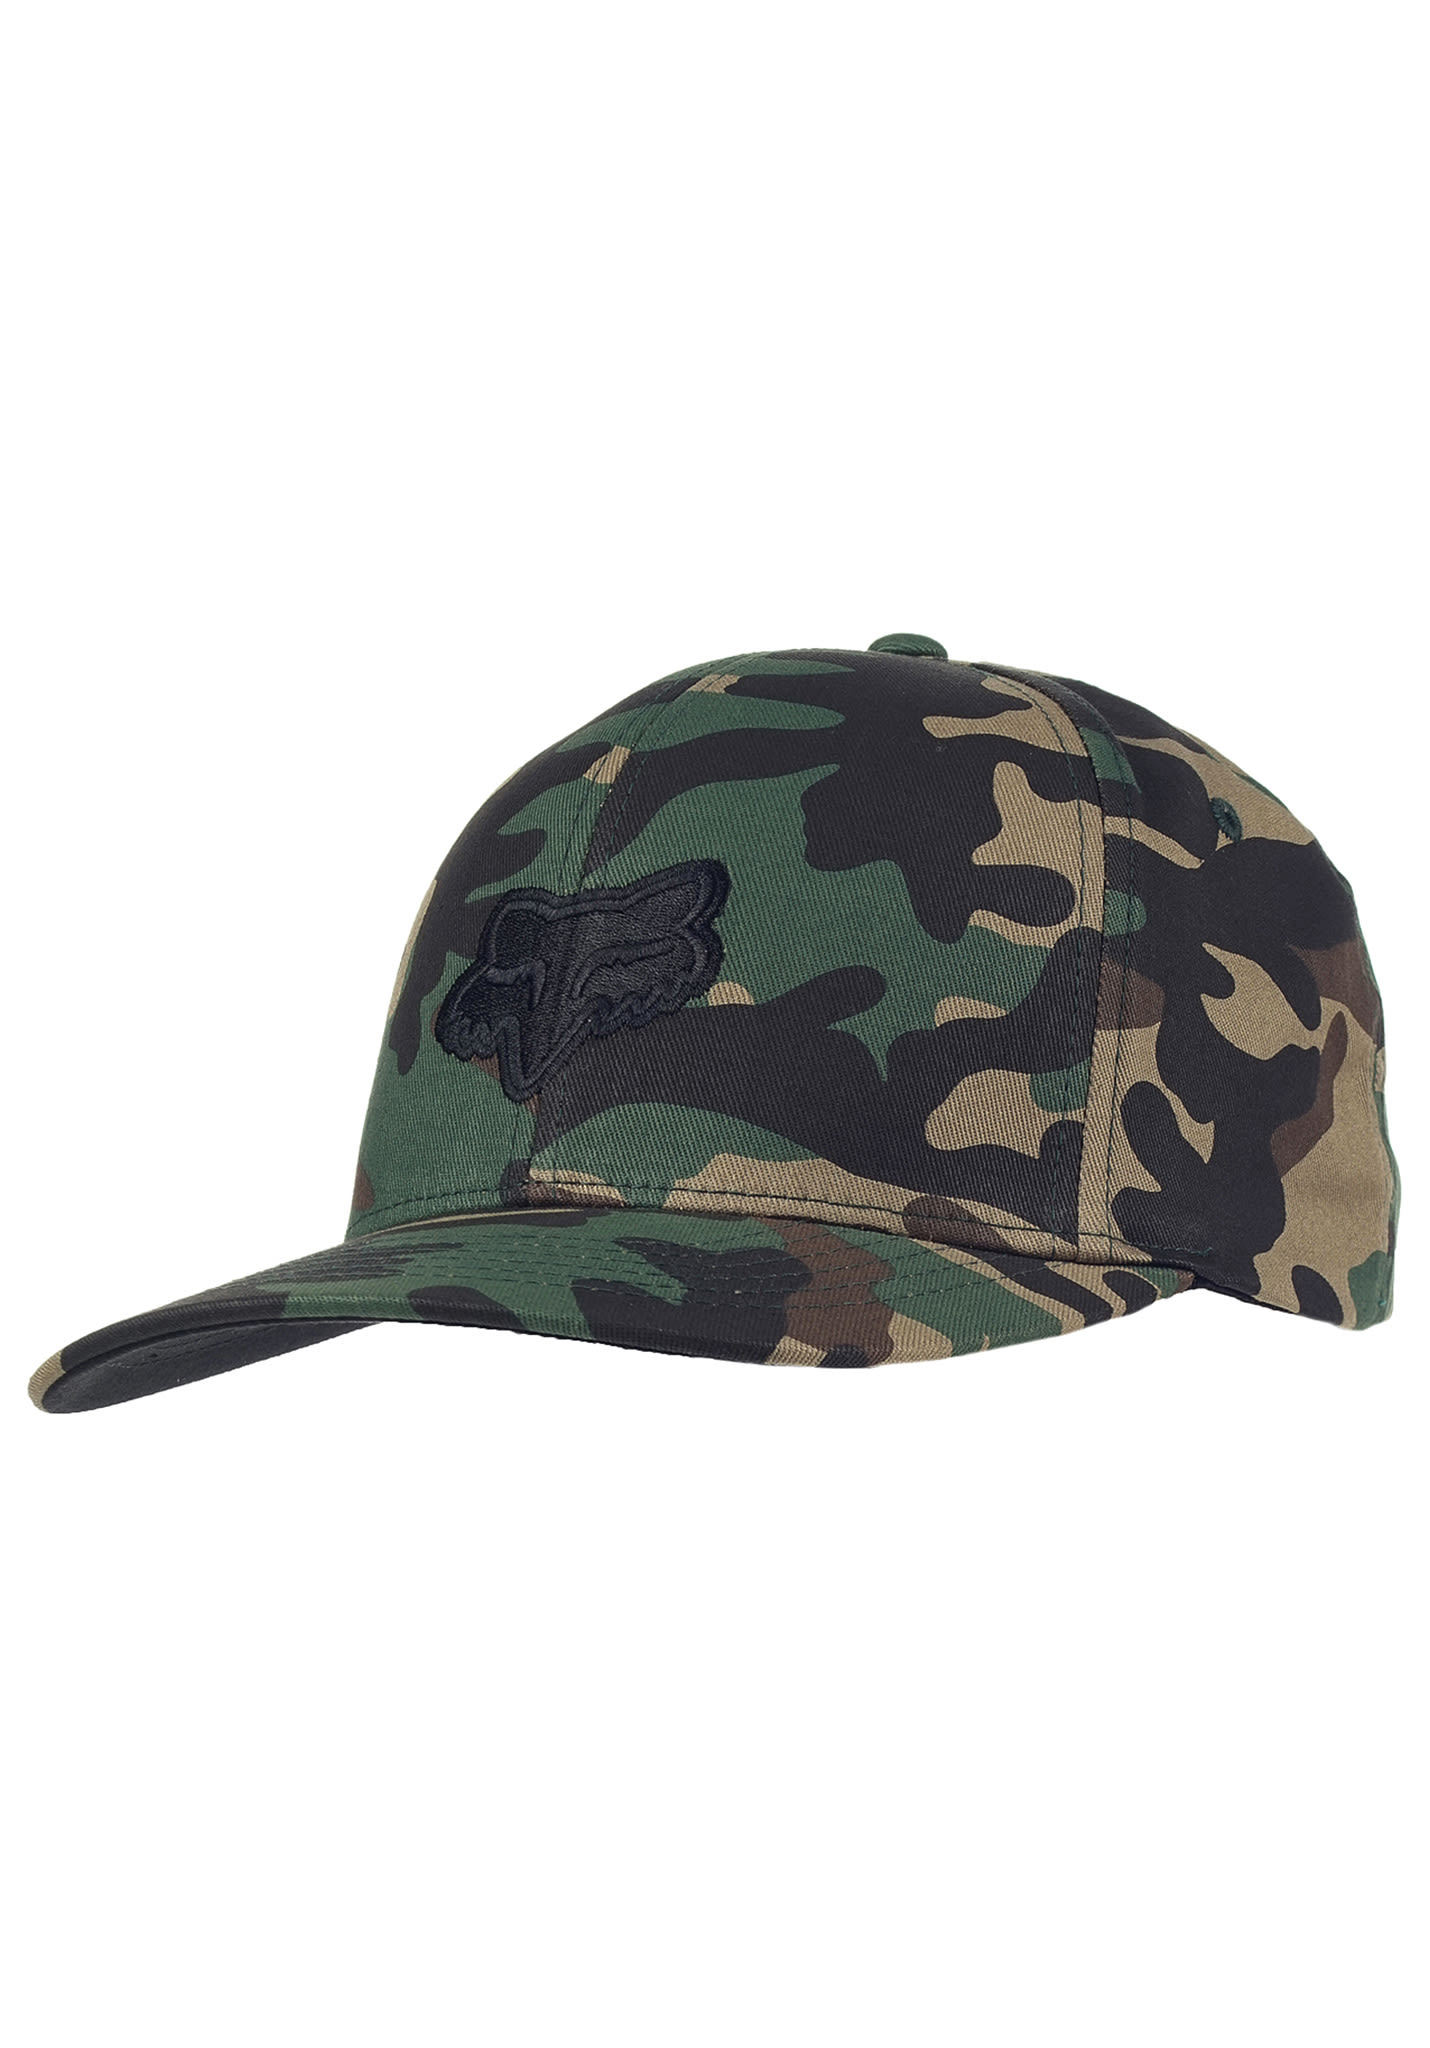 12f612f2579f06 FOX Legacy - Flexfit Cap for Men - Camo - Planet Sports